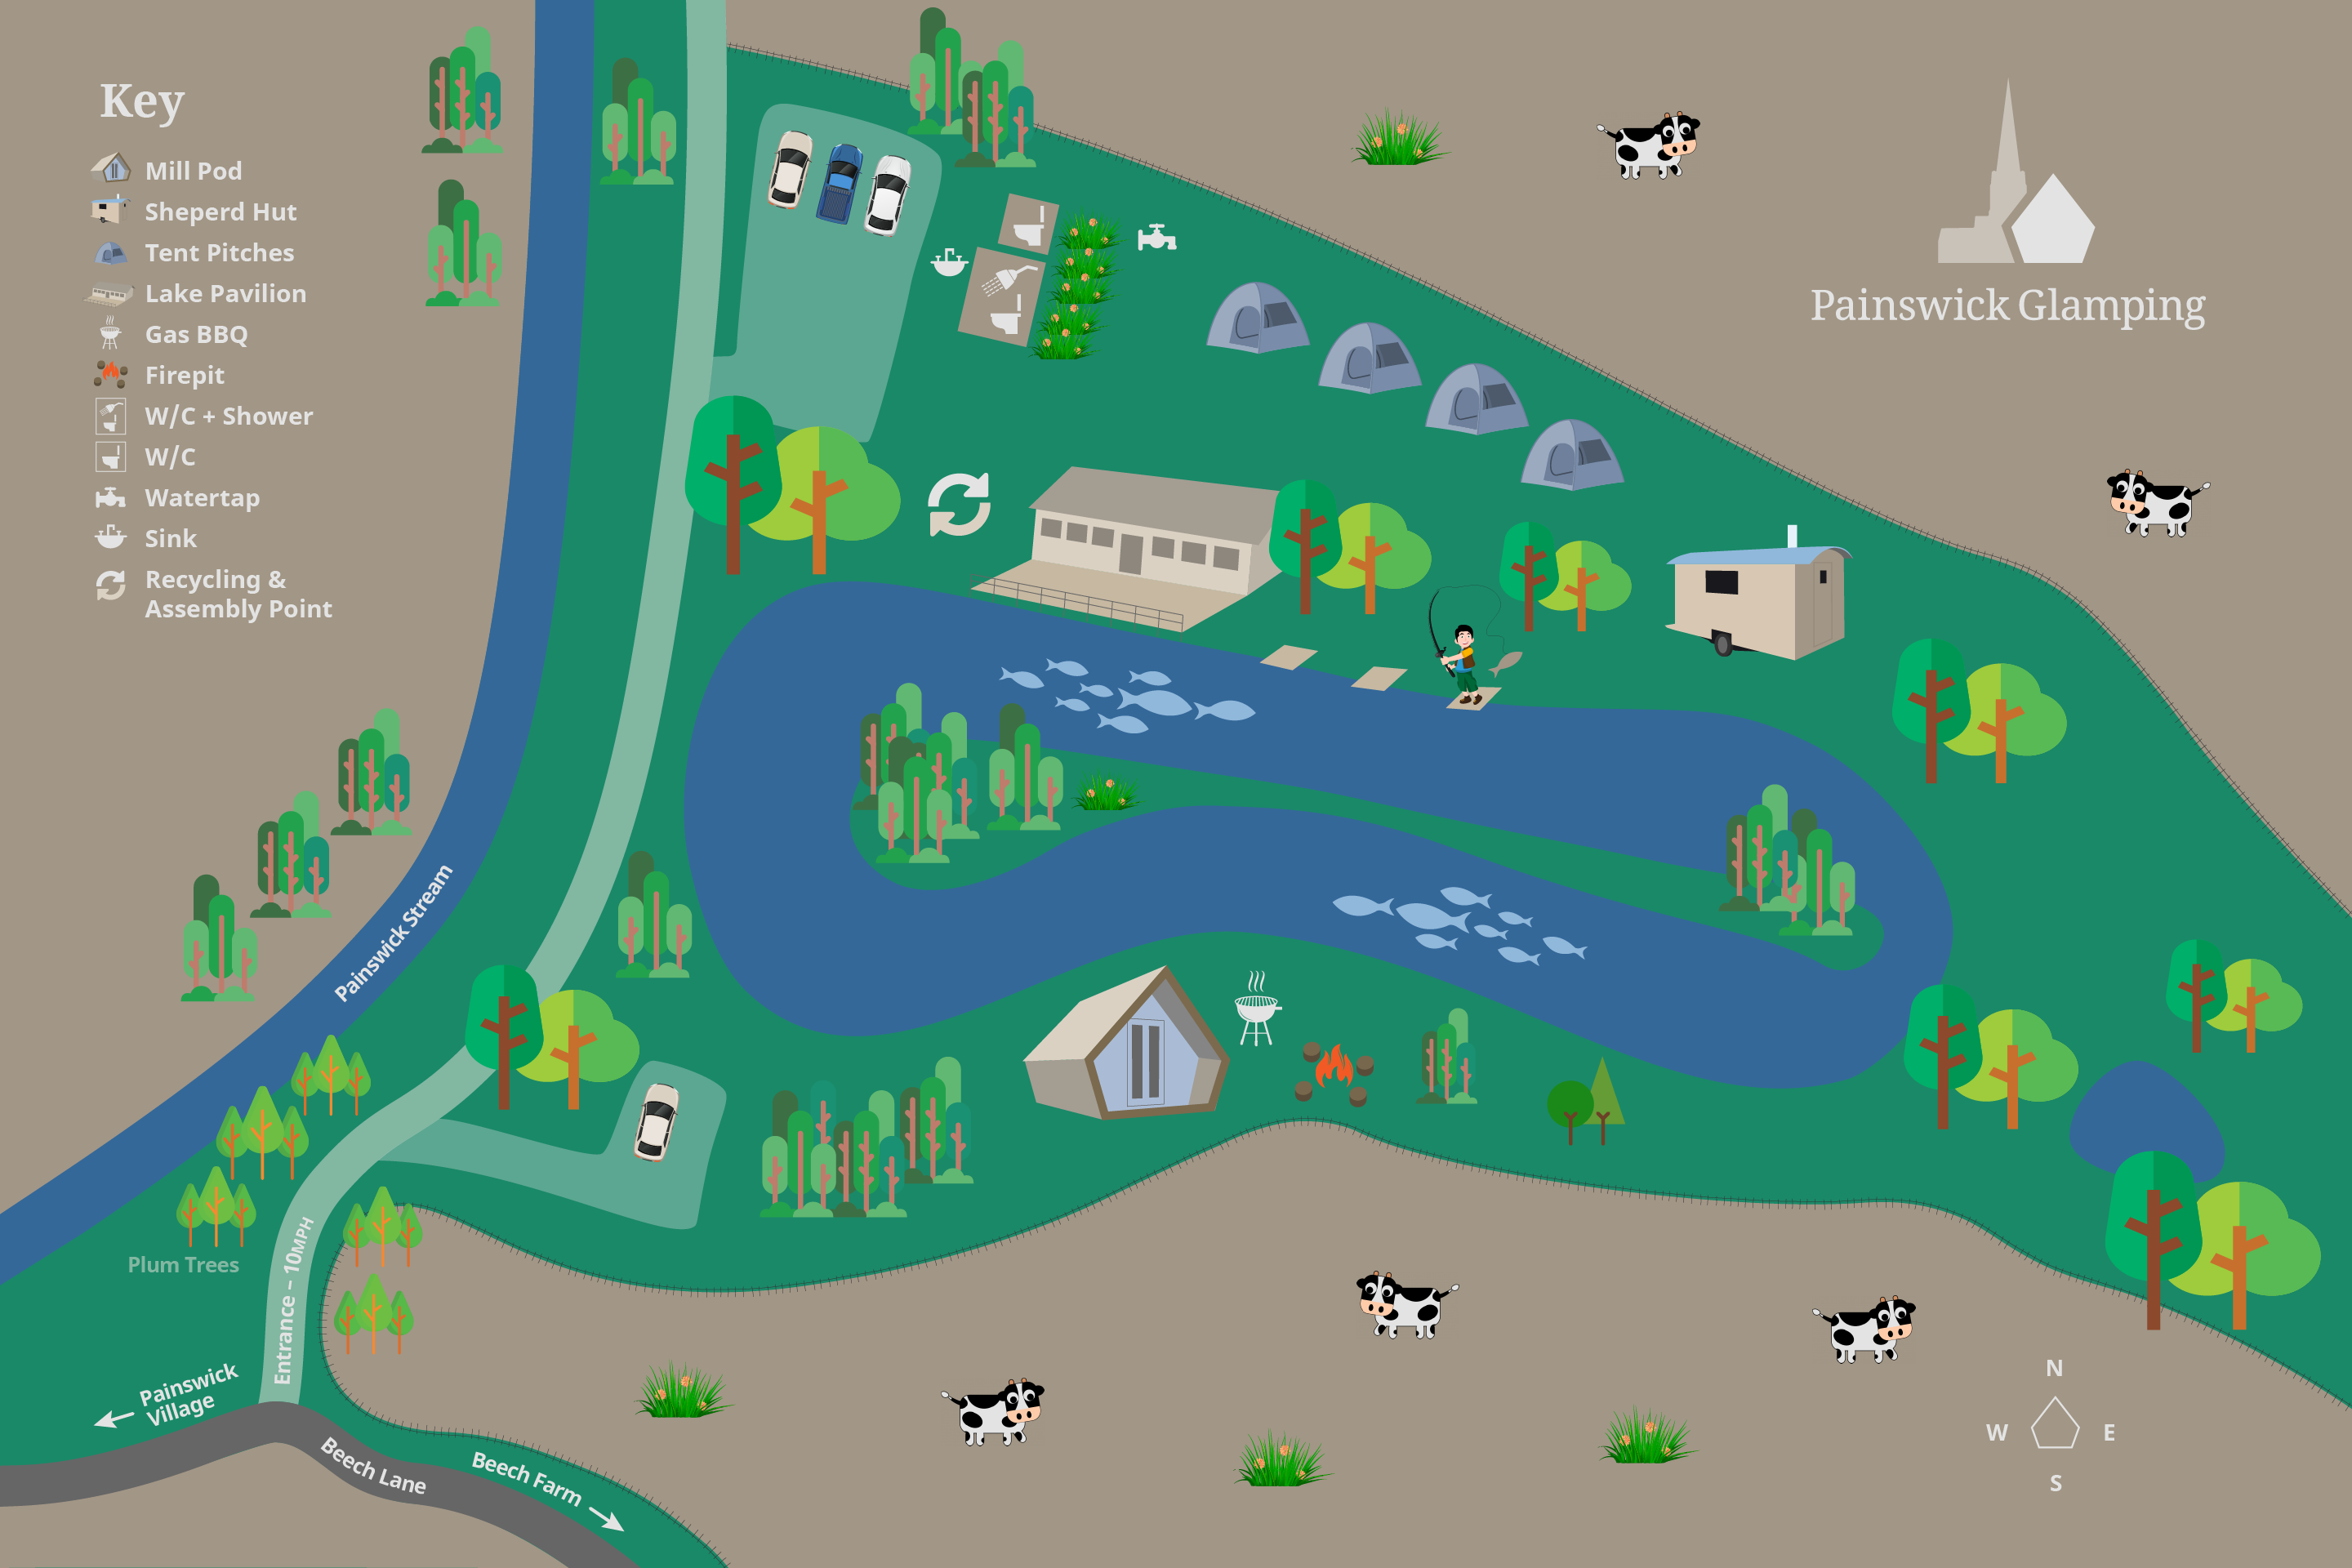 Painswick Glamping Site Map